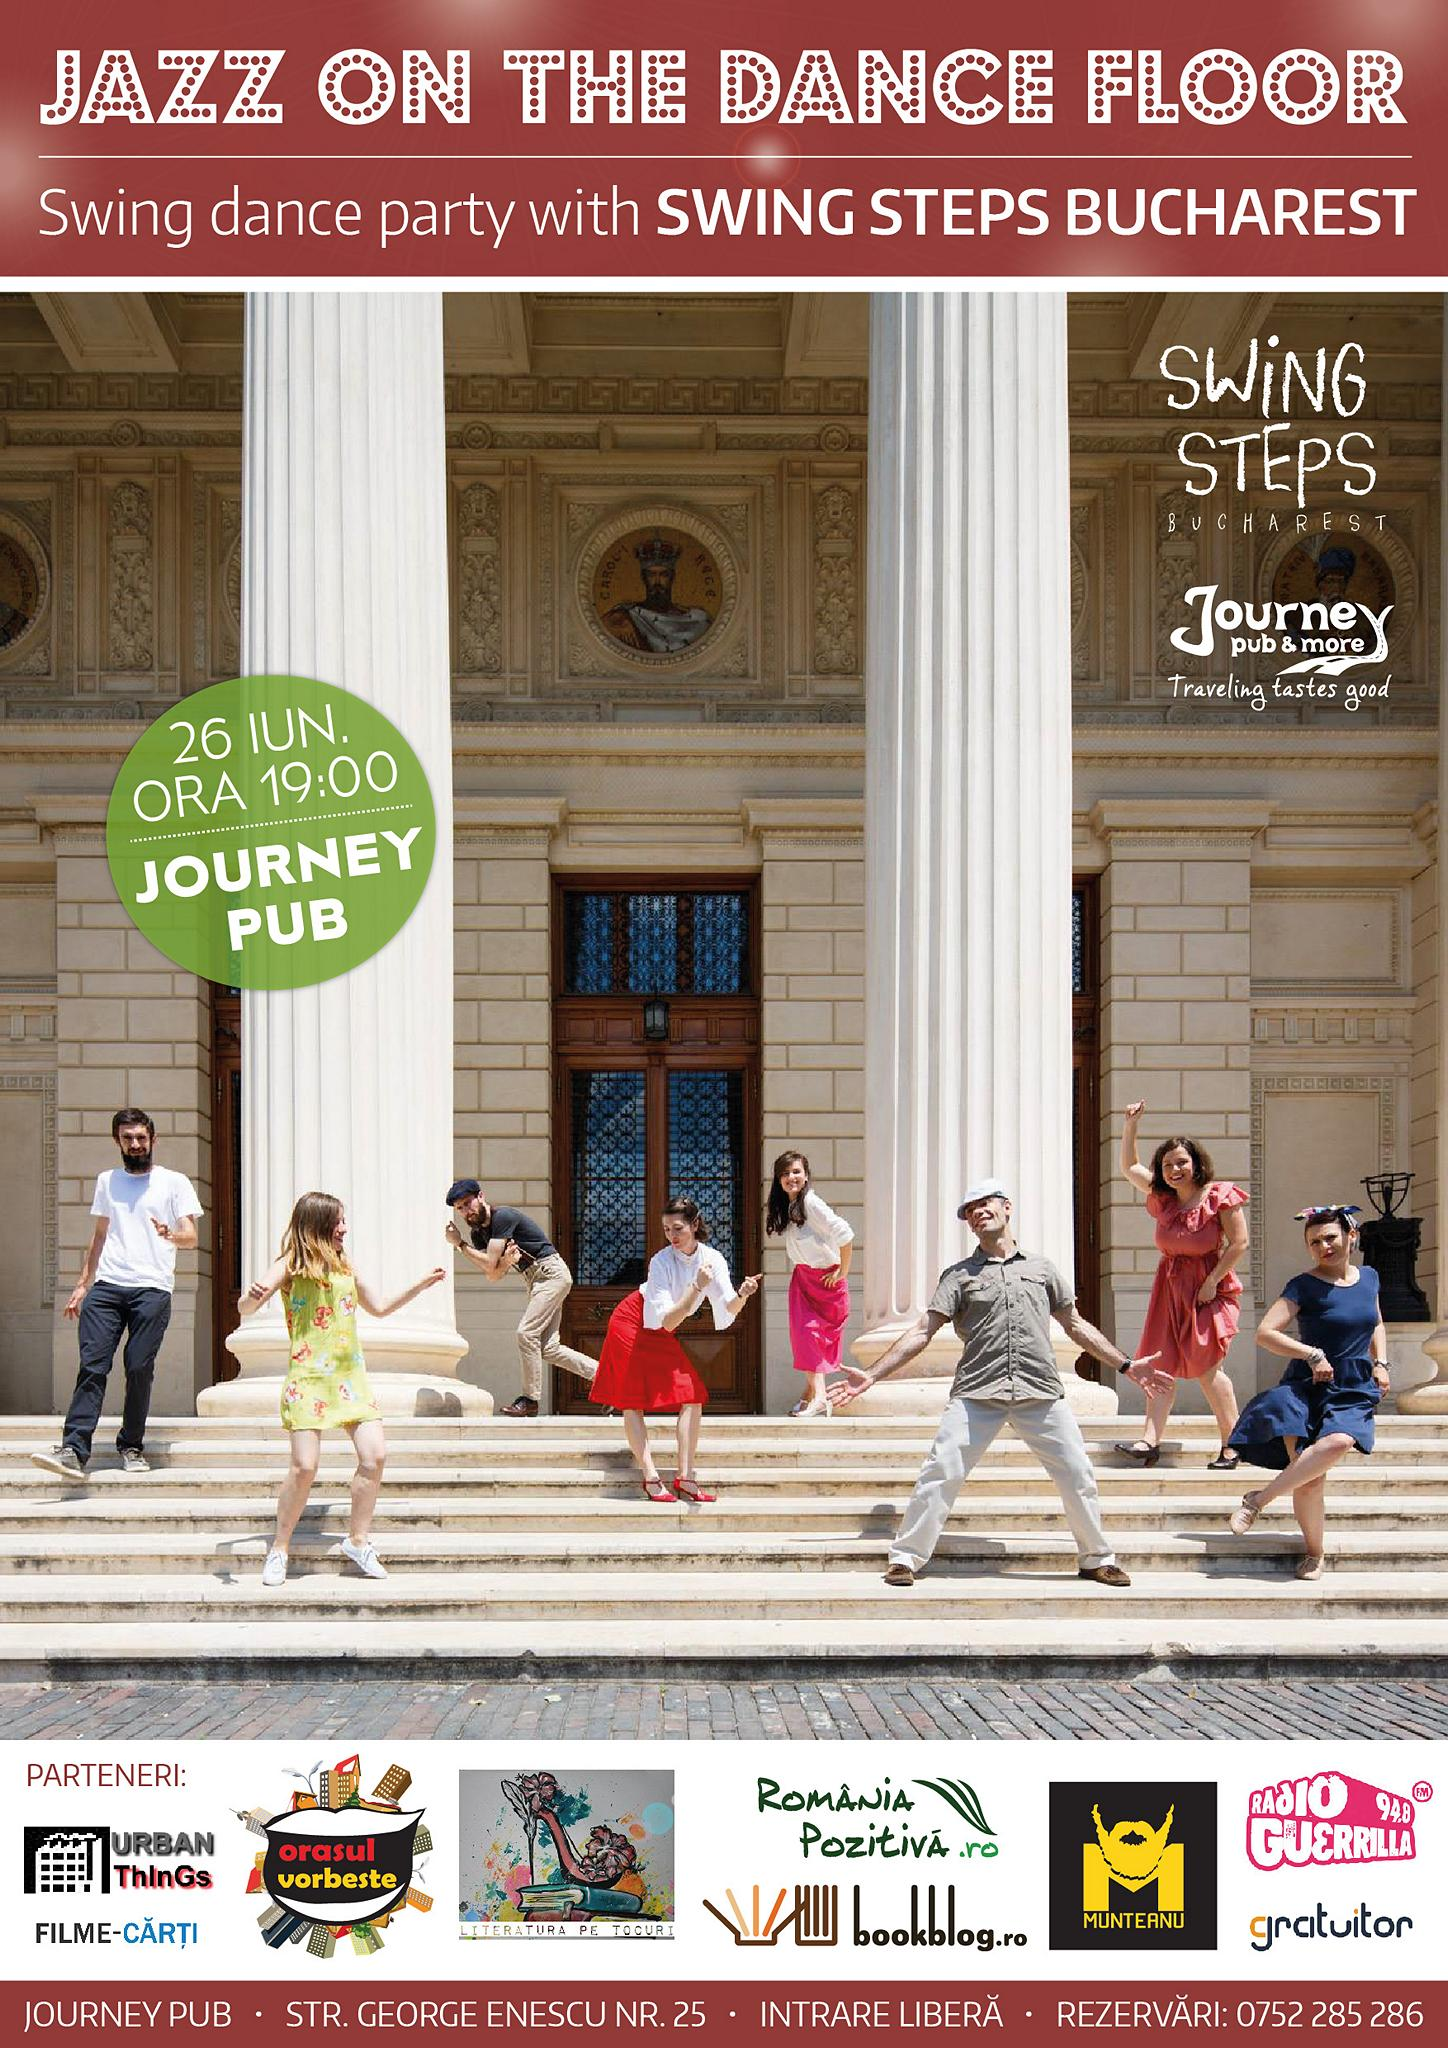 JAZZ ON THE DANCE FLOOR: Swing dance party with Swing Steps Bucharest